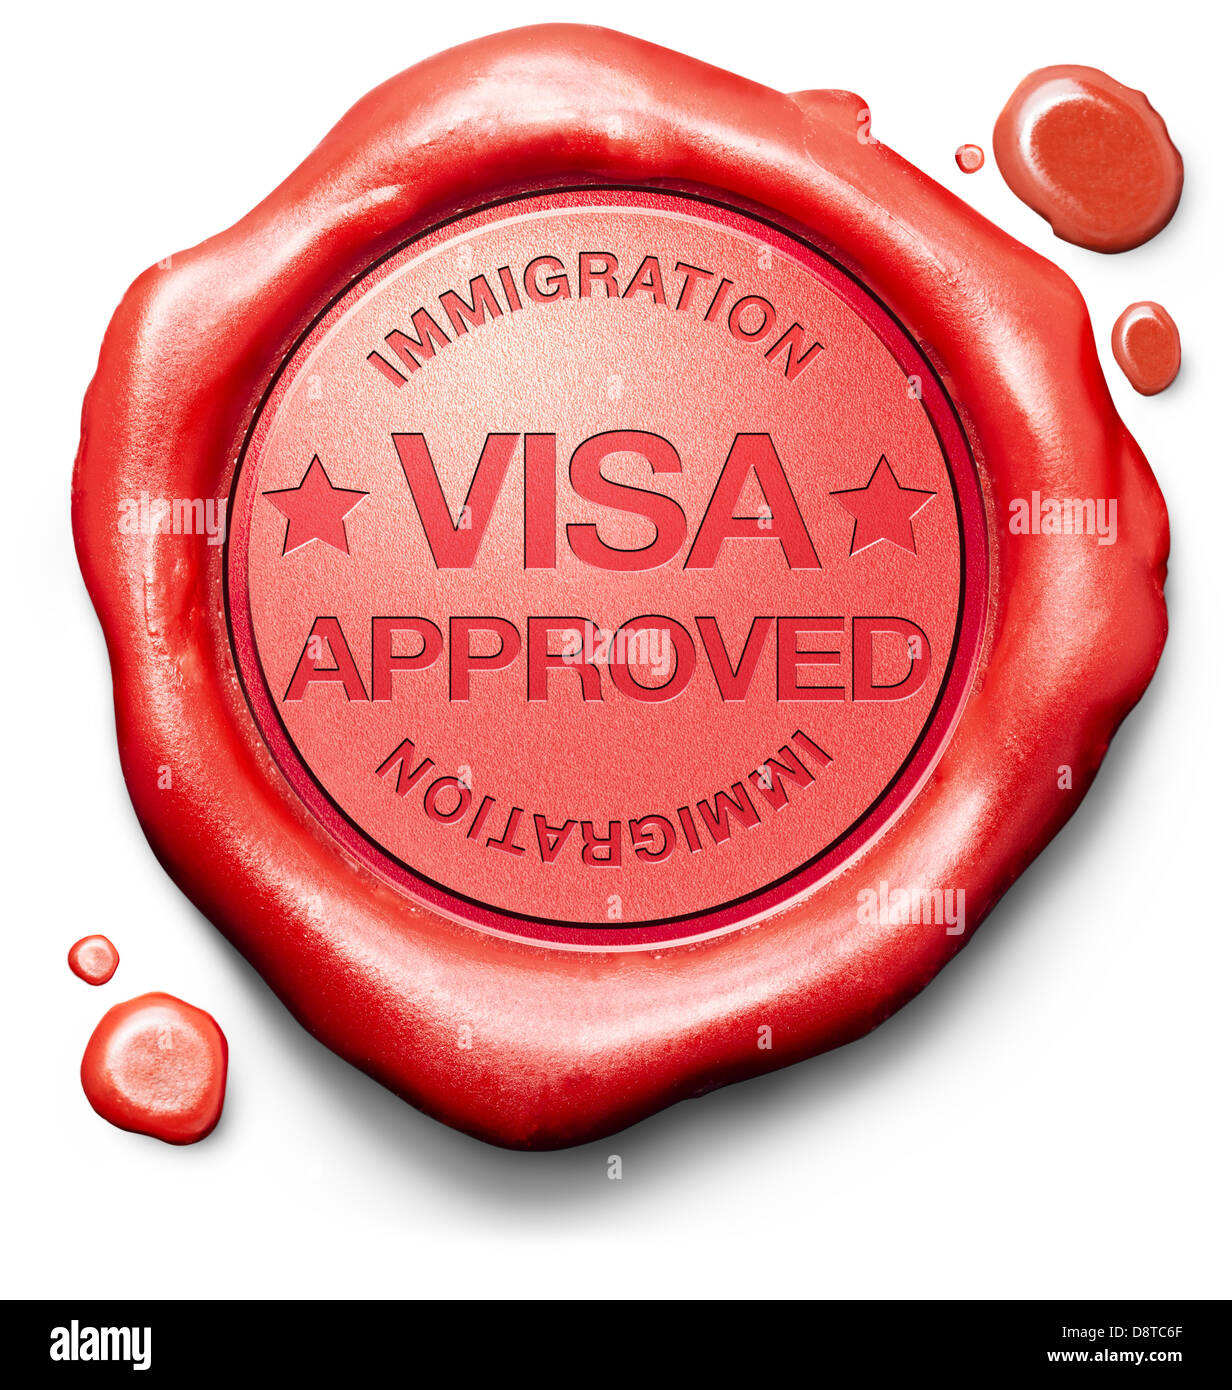 visa approved access granted by immigration passport control at border crossing Stock Photo